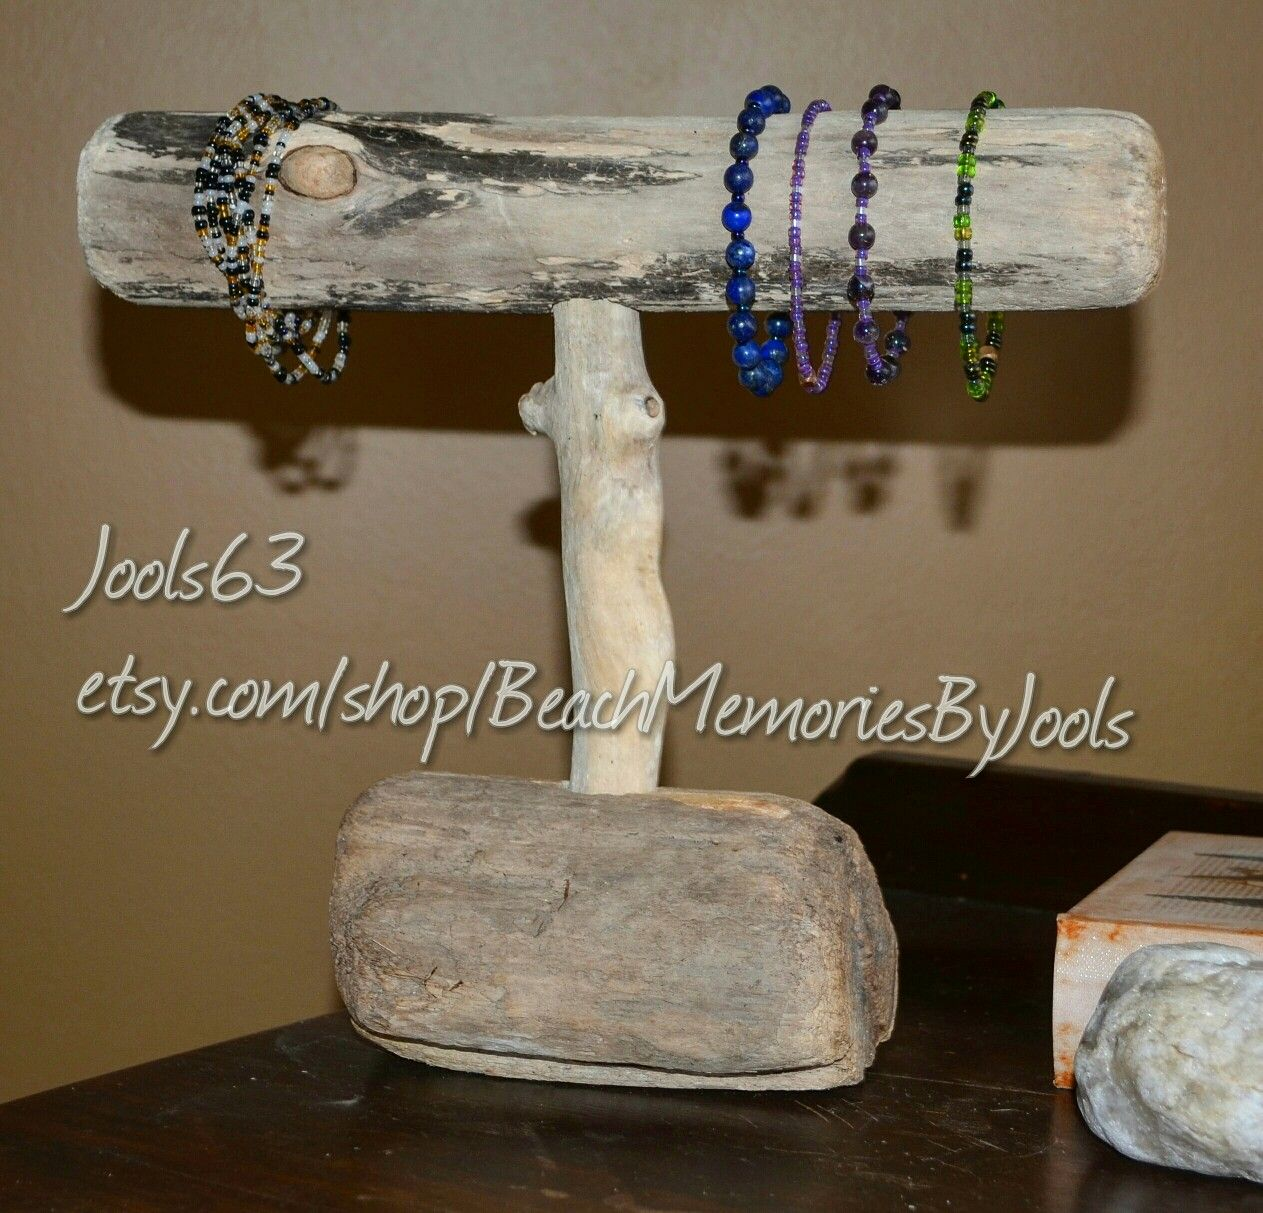 Driftwood art, bracelet holder, jewelry display, rustic art, driftwood jewelry display, driftwood jewelry holder.